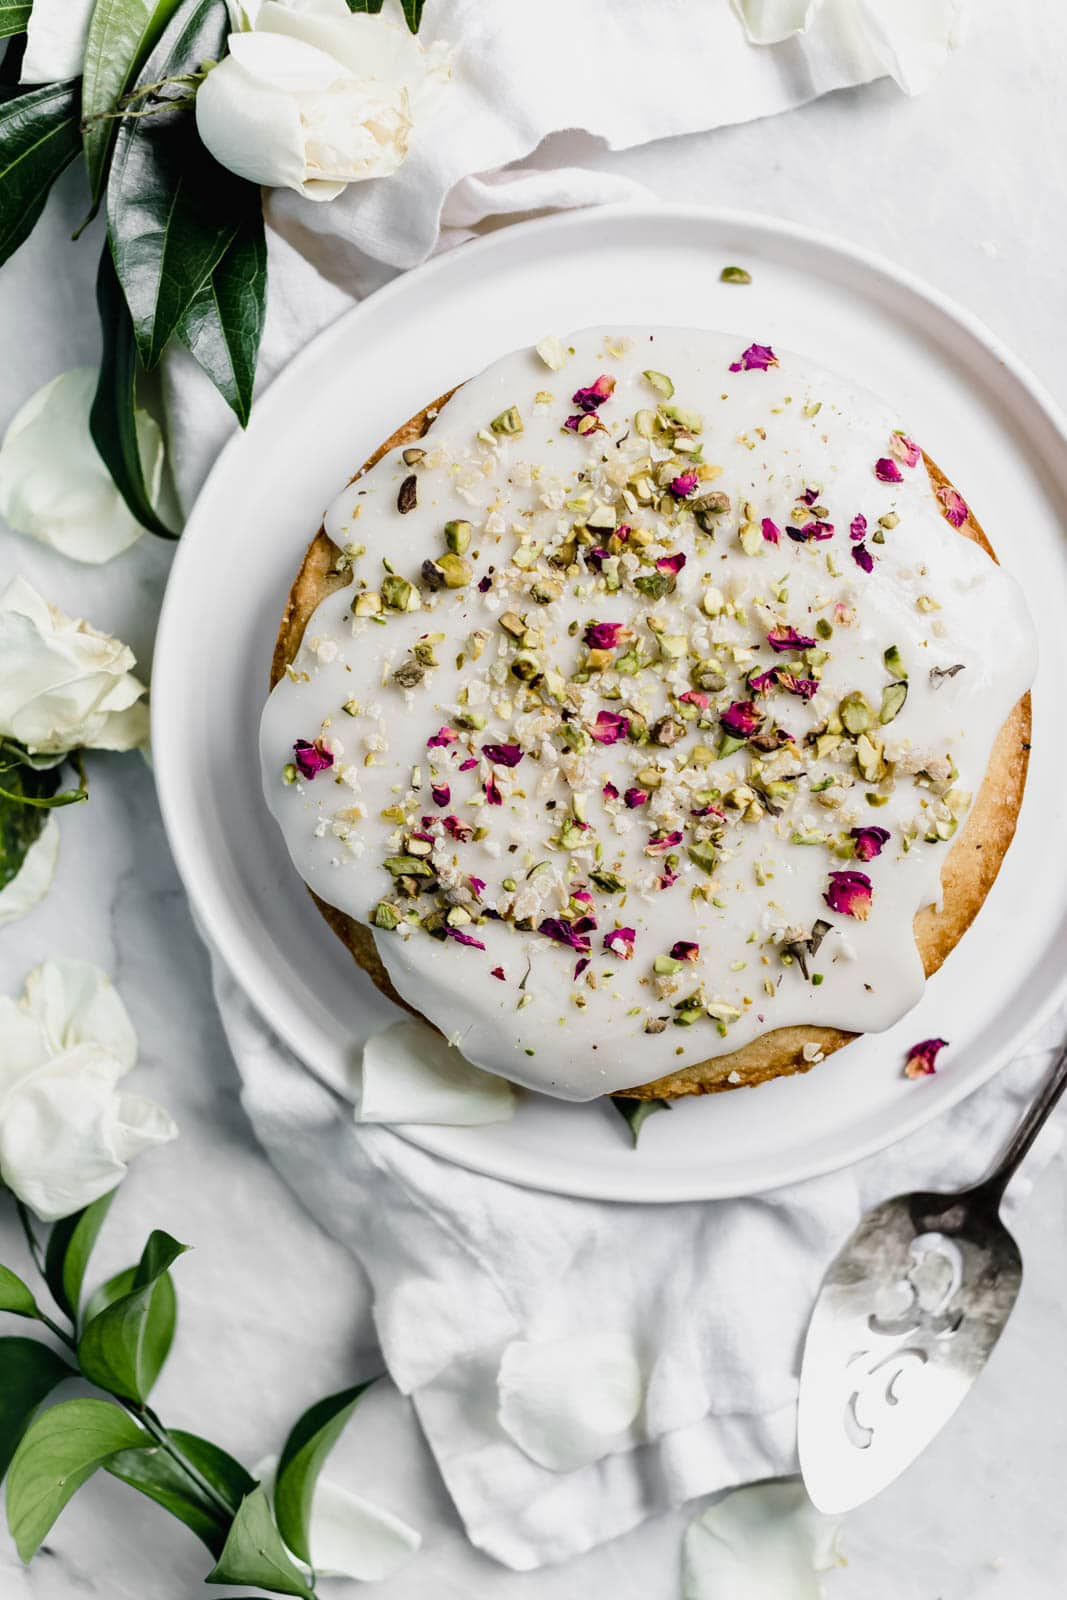 Persian Love Cake: a fragrant cake flavored with freshly ground cardamom, rose water, and almond flour, and topped with crushed pistachios and rose petals.